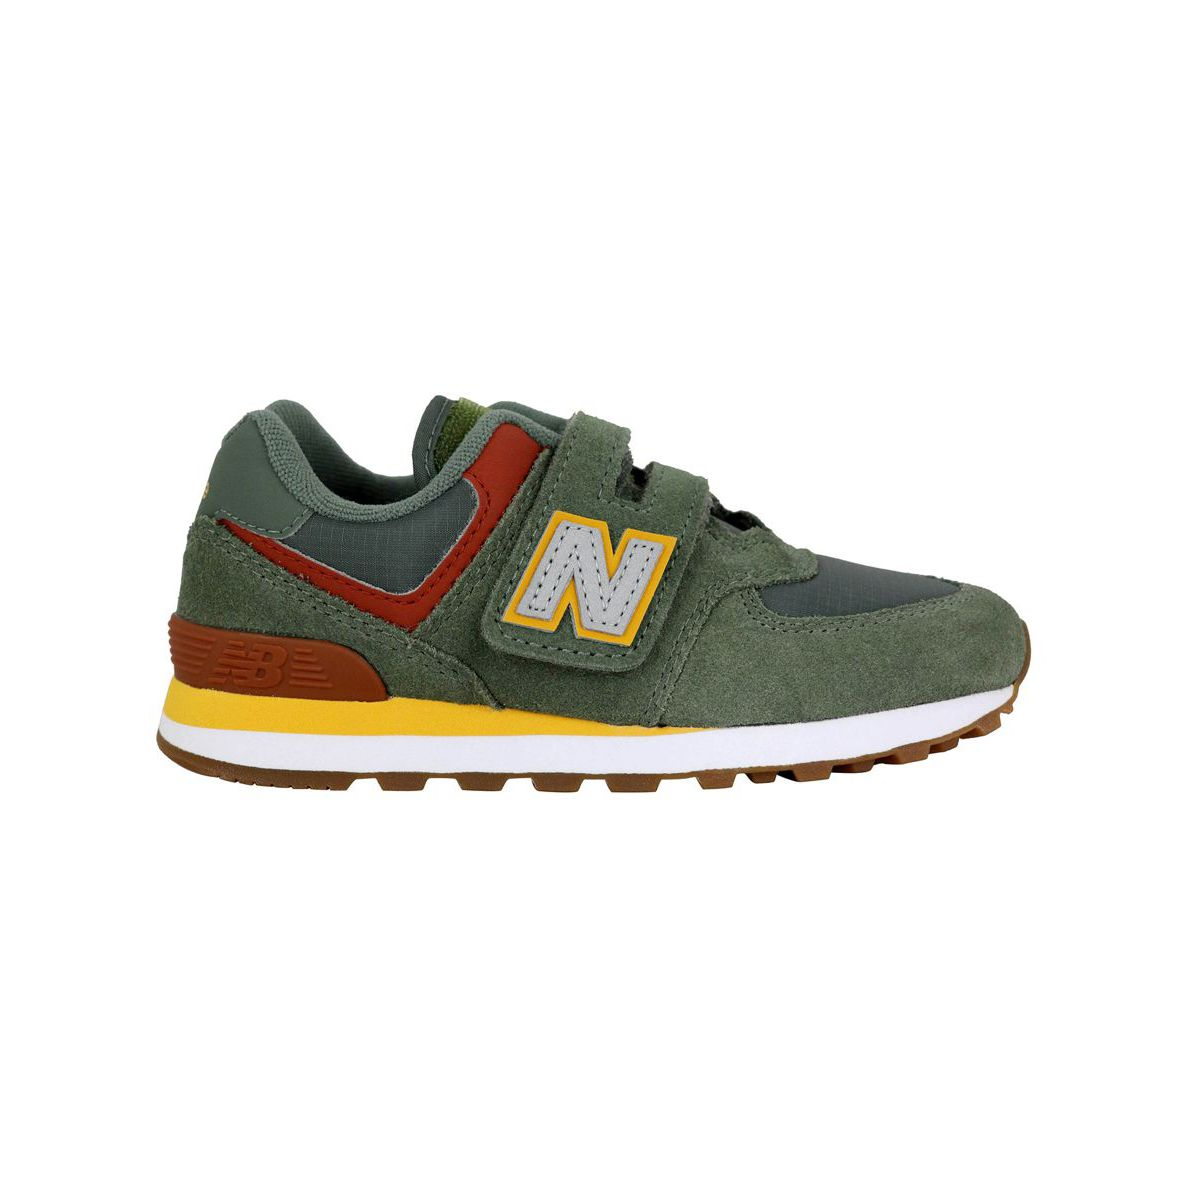 Sneakers YV574PAD Verde/giallo New Balance